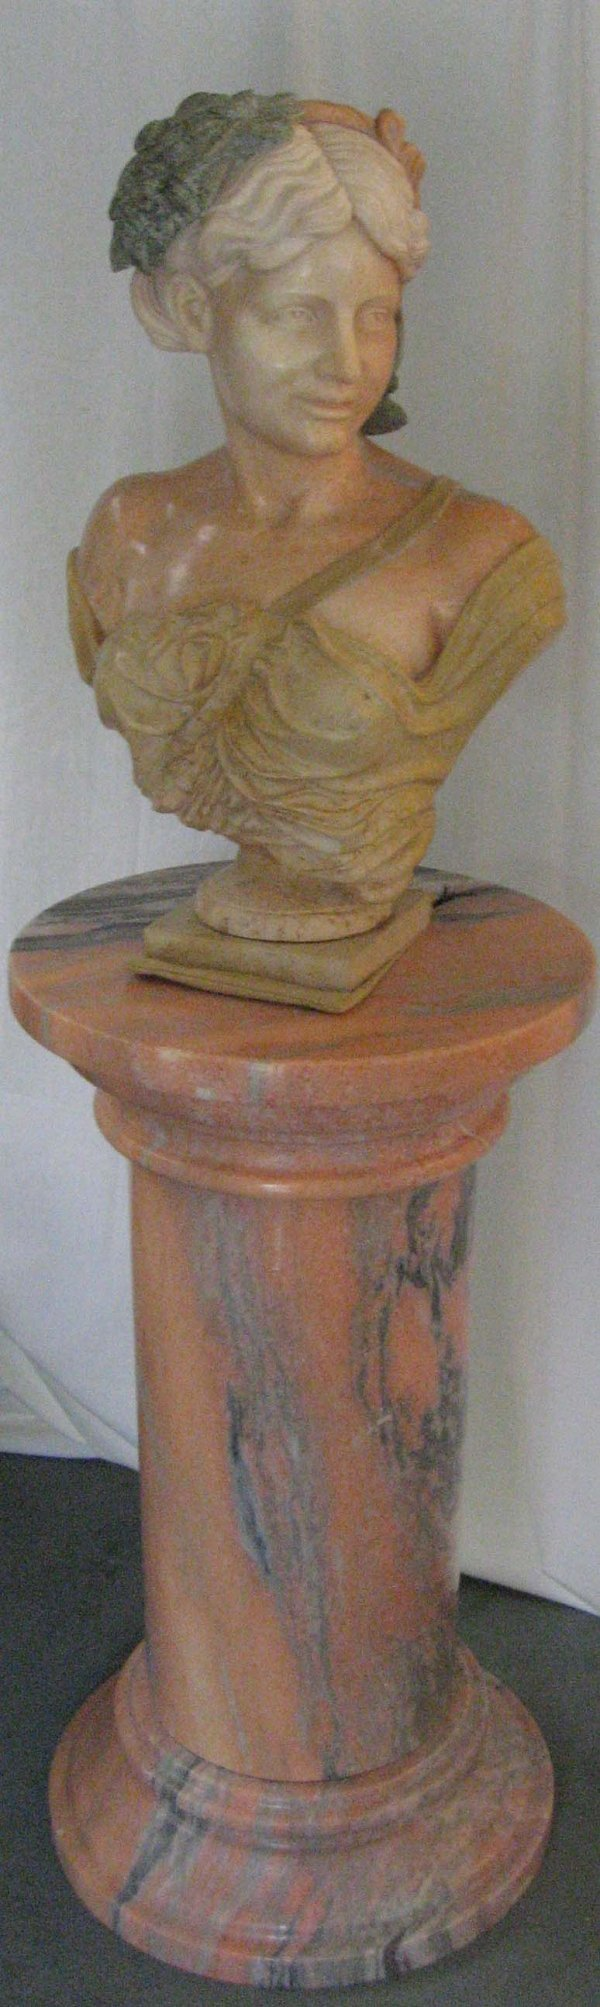 15: A Marble Bust and Column,